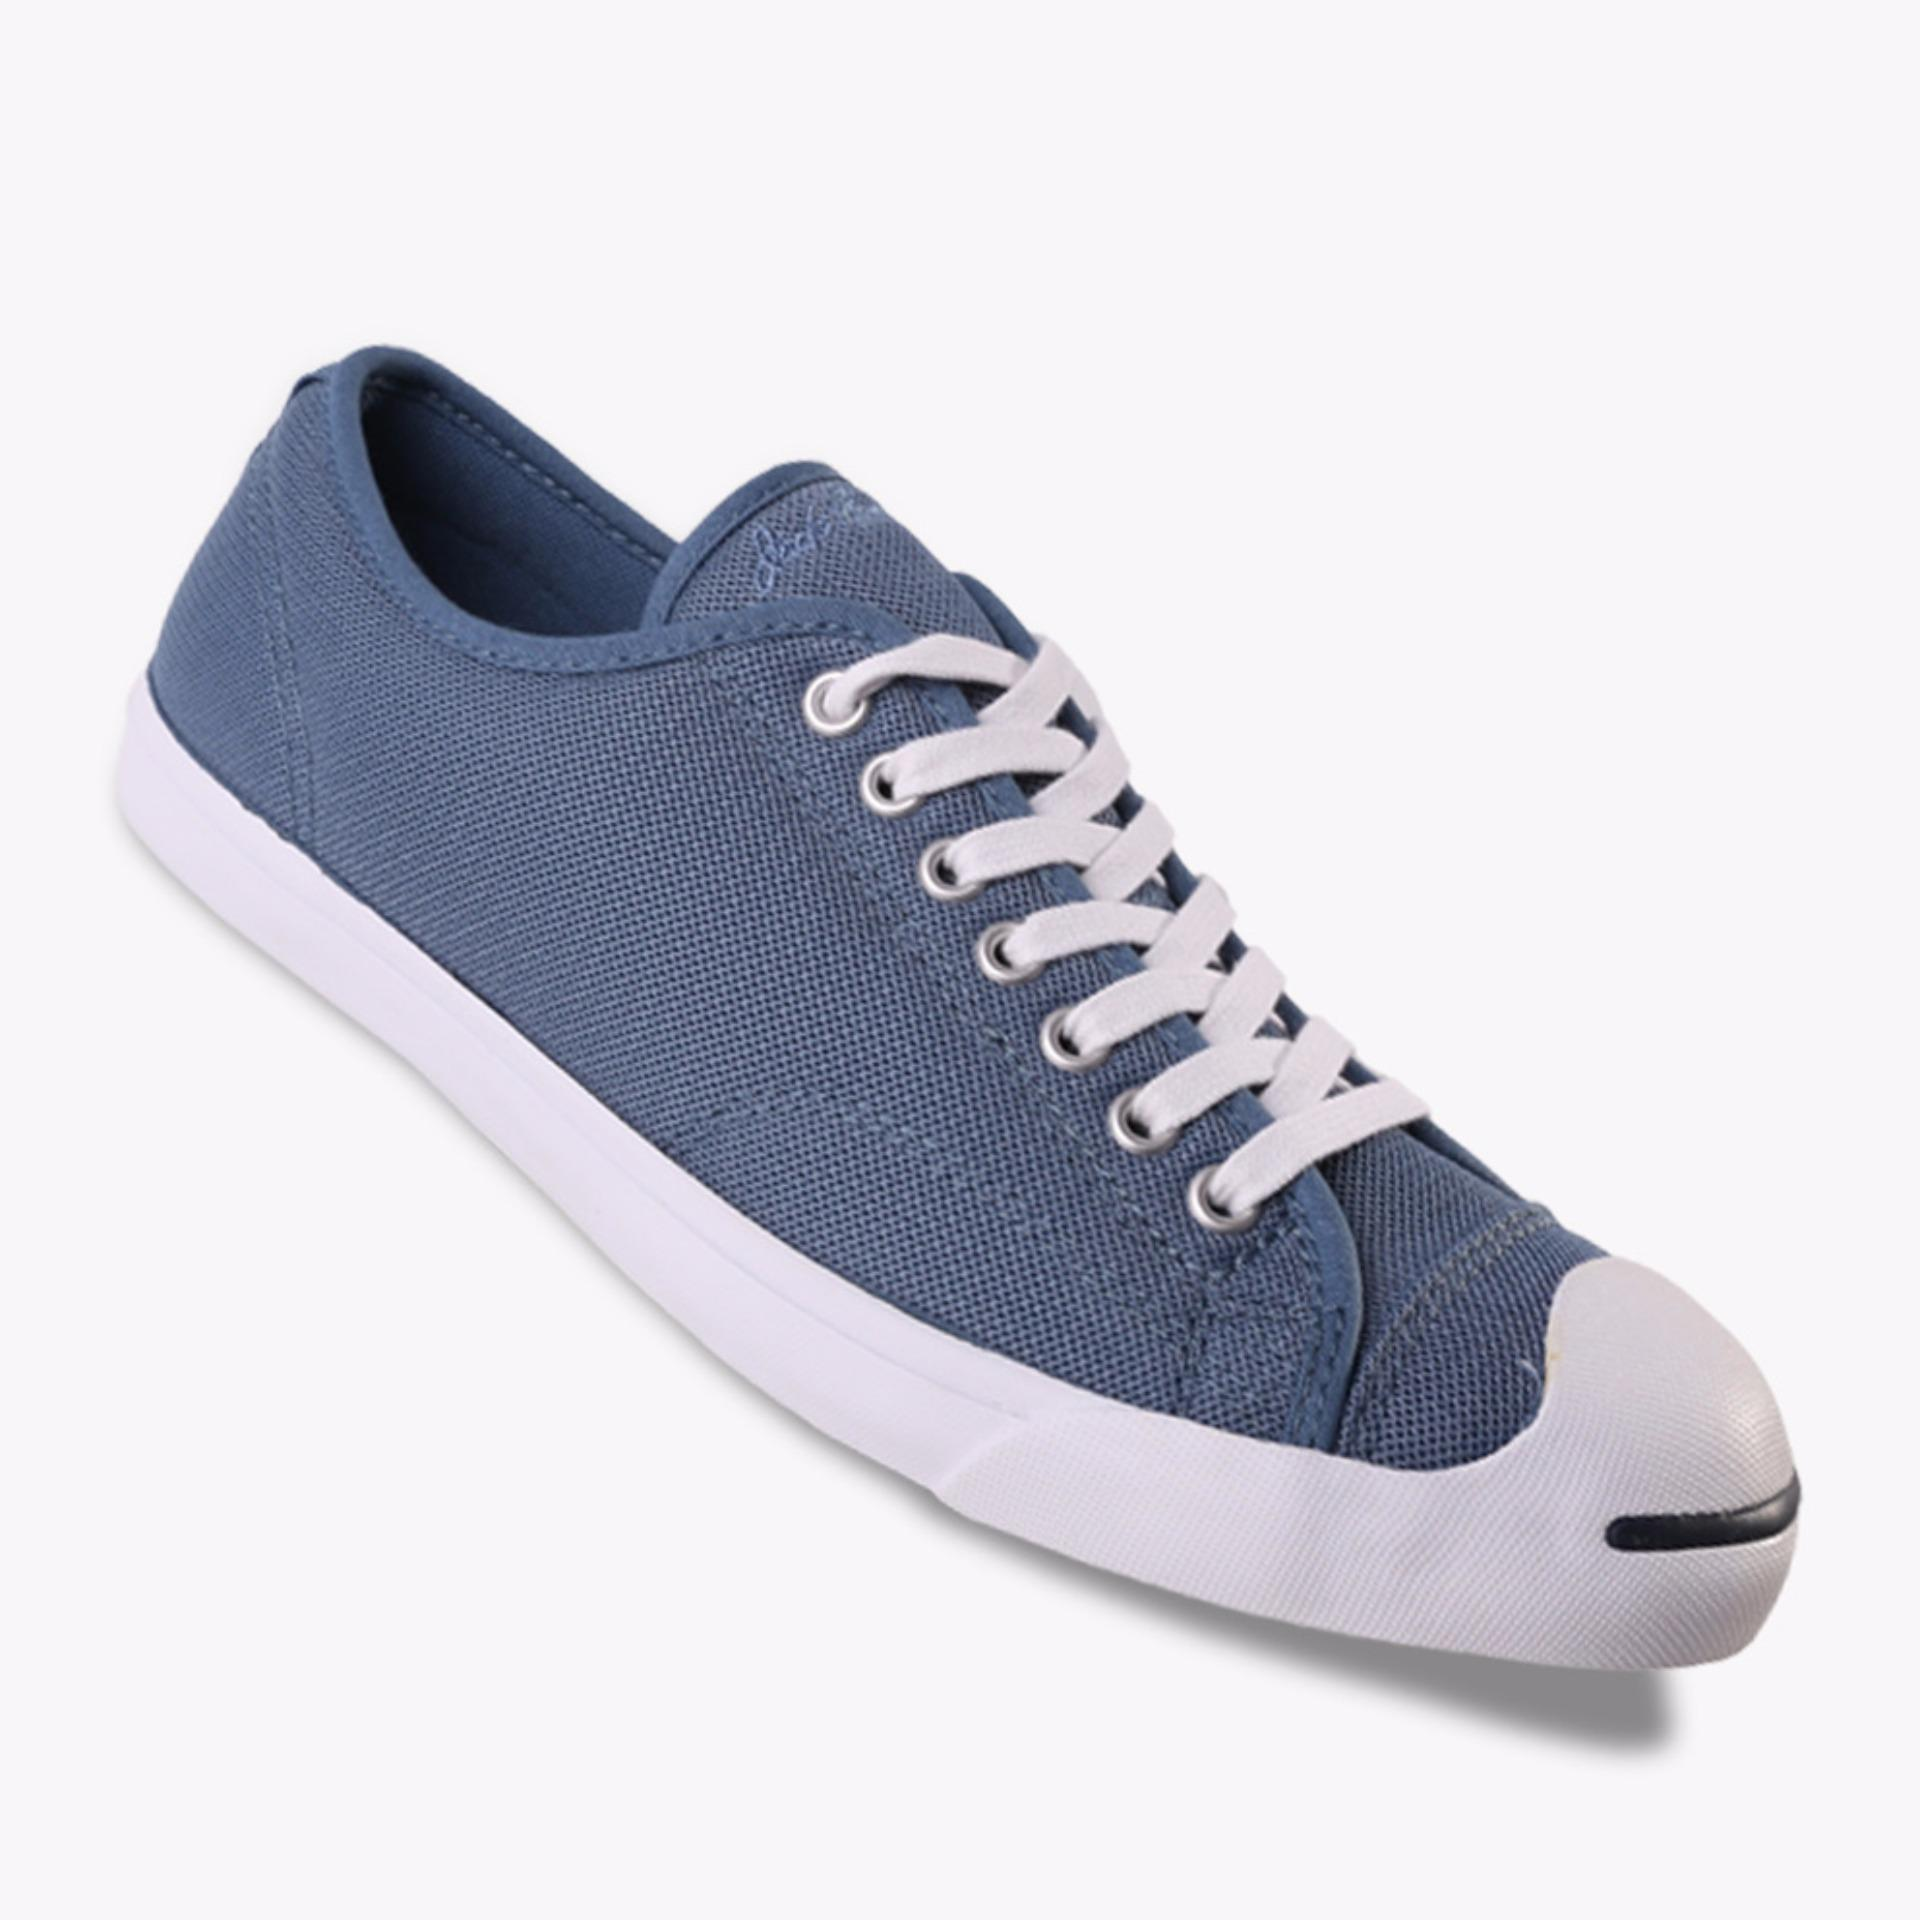 Review Converse Jack Purcell Lp Ox Men S Sneakers Shoes Biru Indonesia